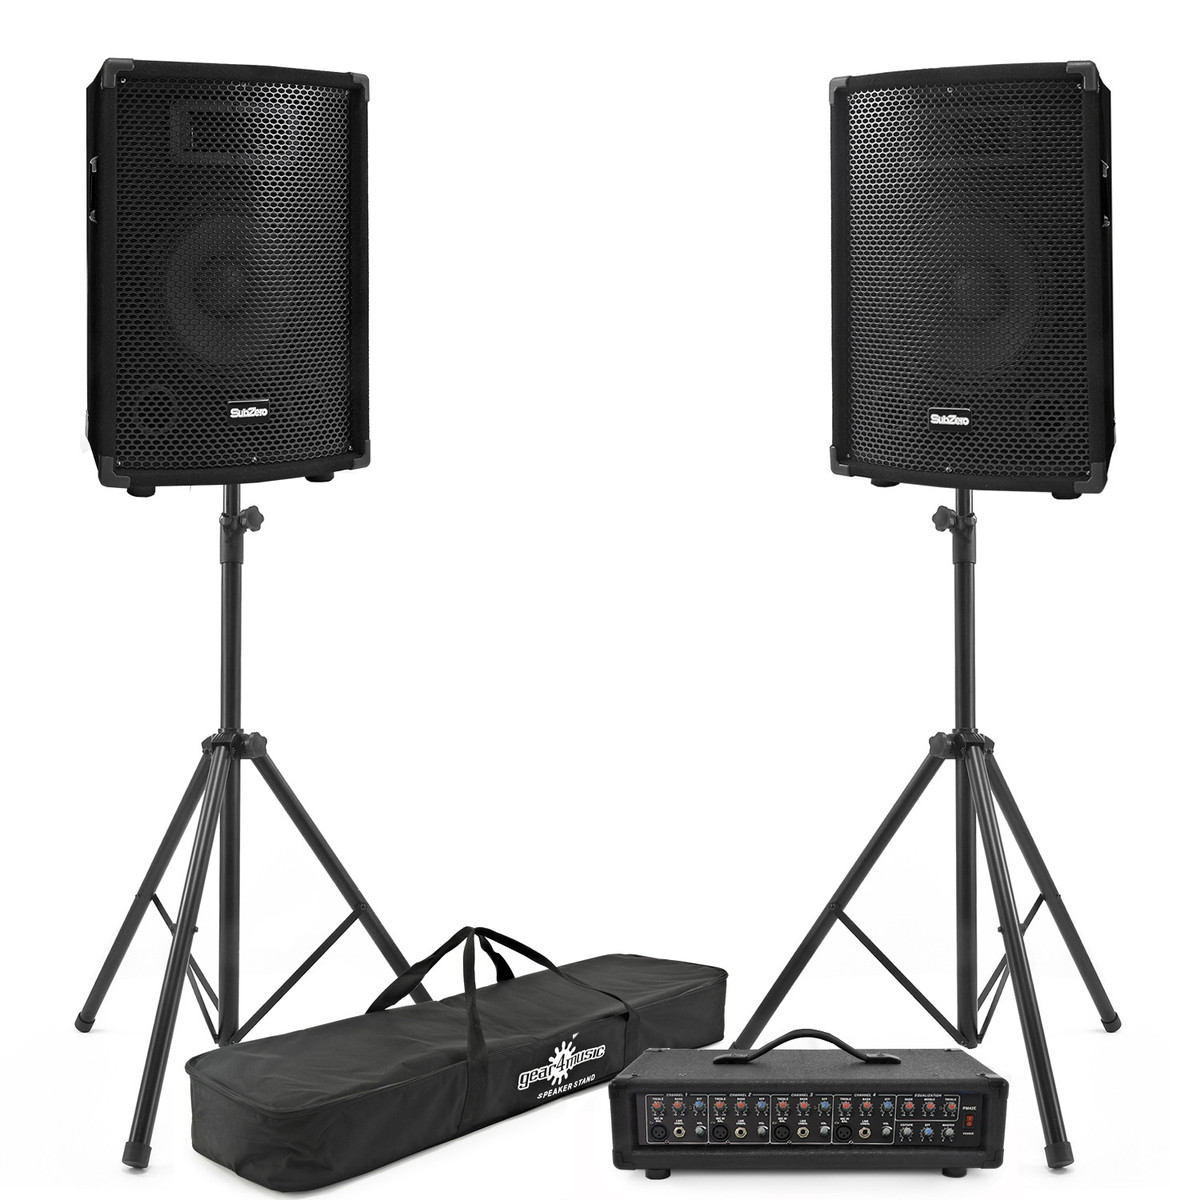 Image of 150W SubZero PA Package with FX Mixer Speakers and Stands